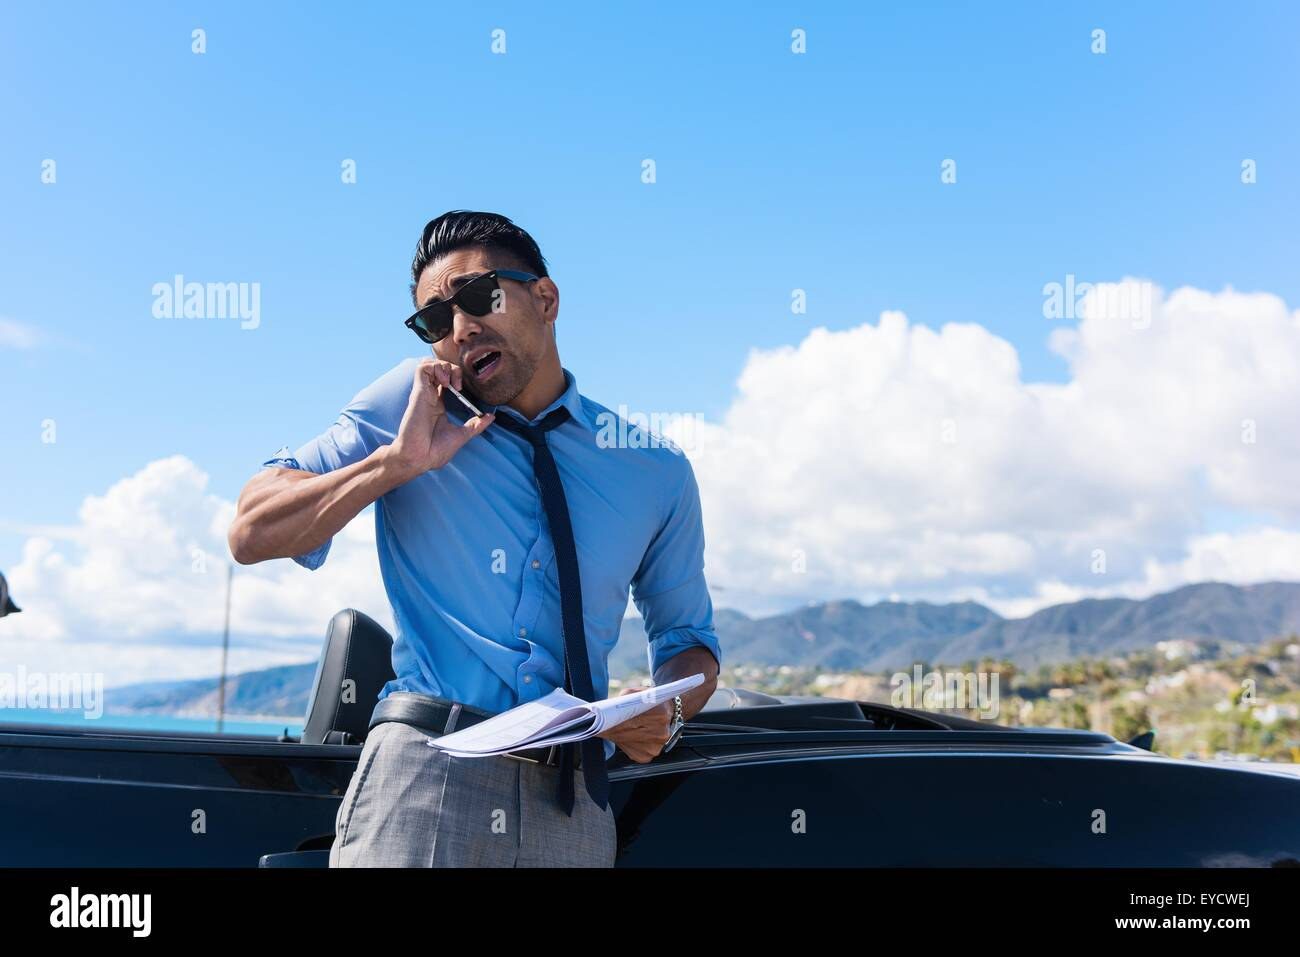 Anxious young businessman at coast parking lot talking on smartphone - Stock Image